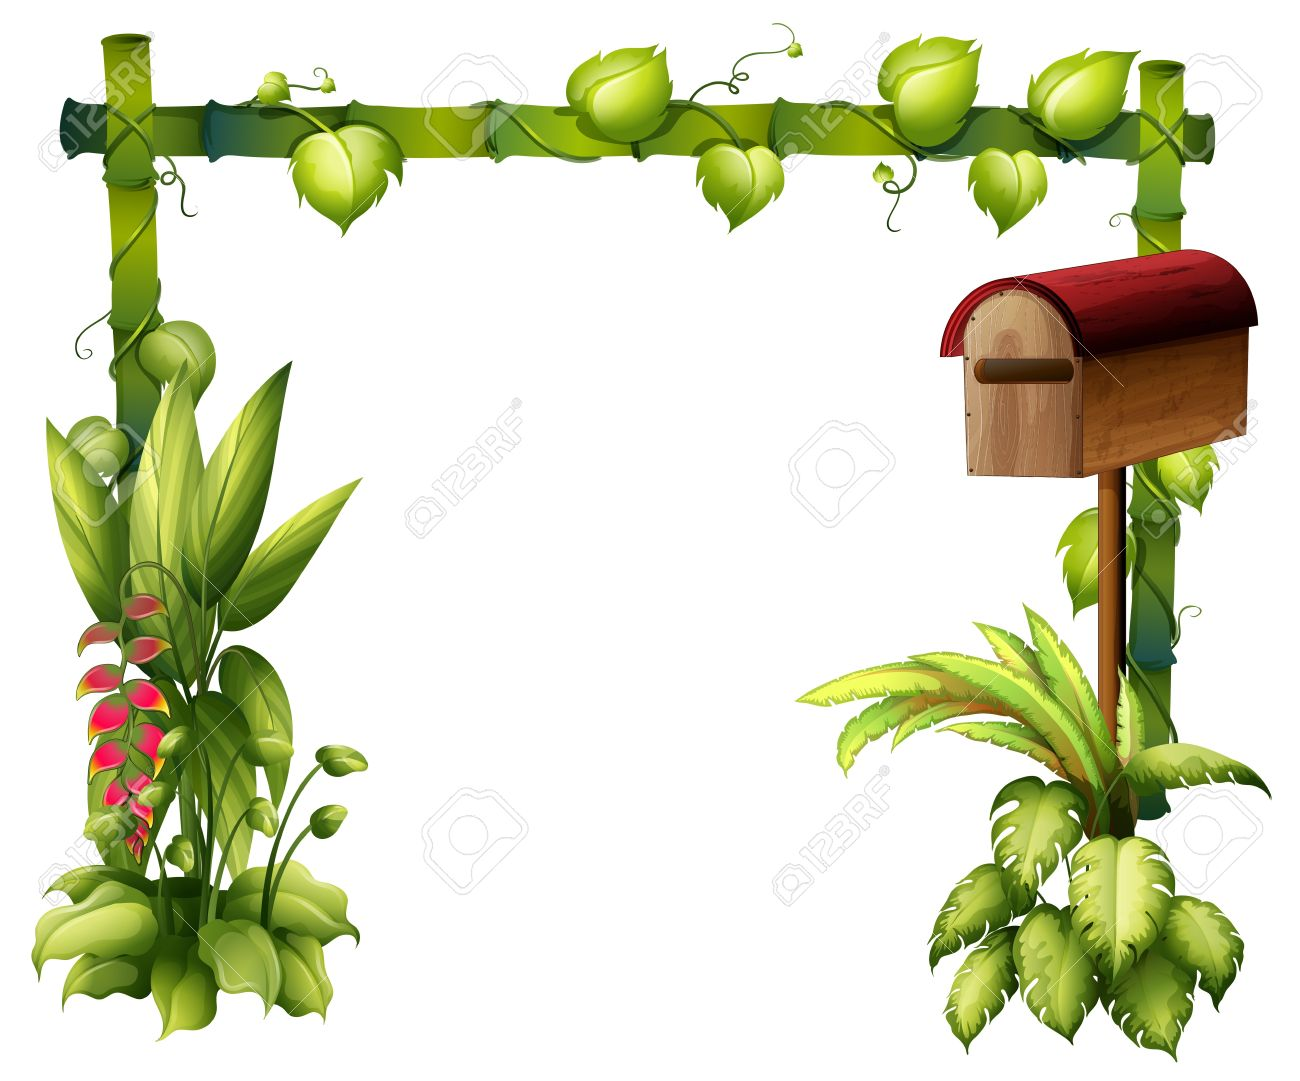 Illustration of a letter box and plants on a white background Stock Vector - 17892433